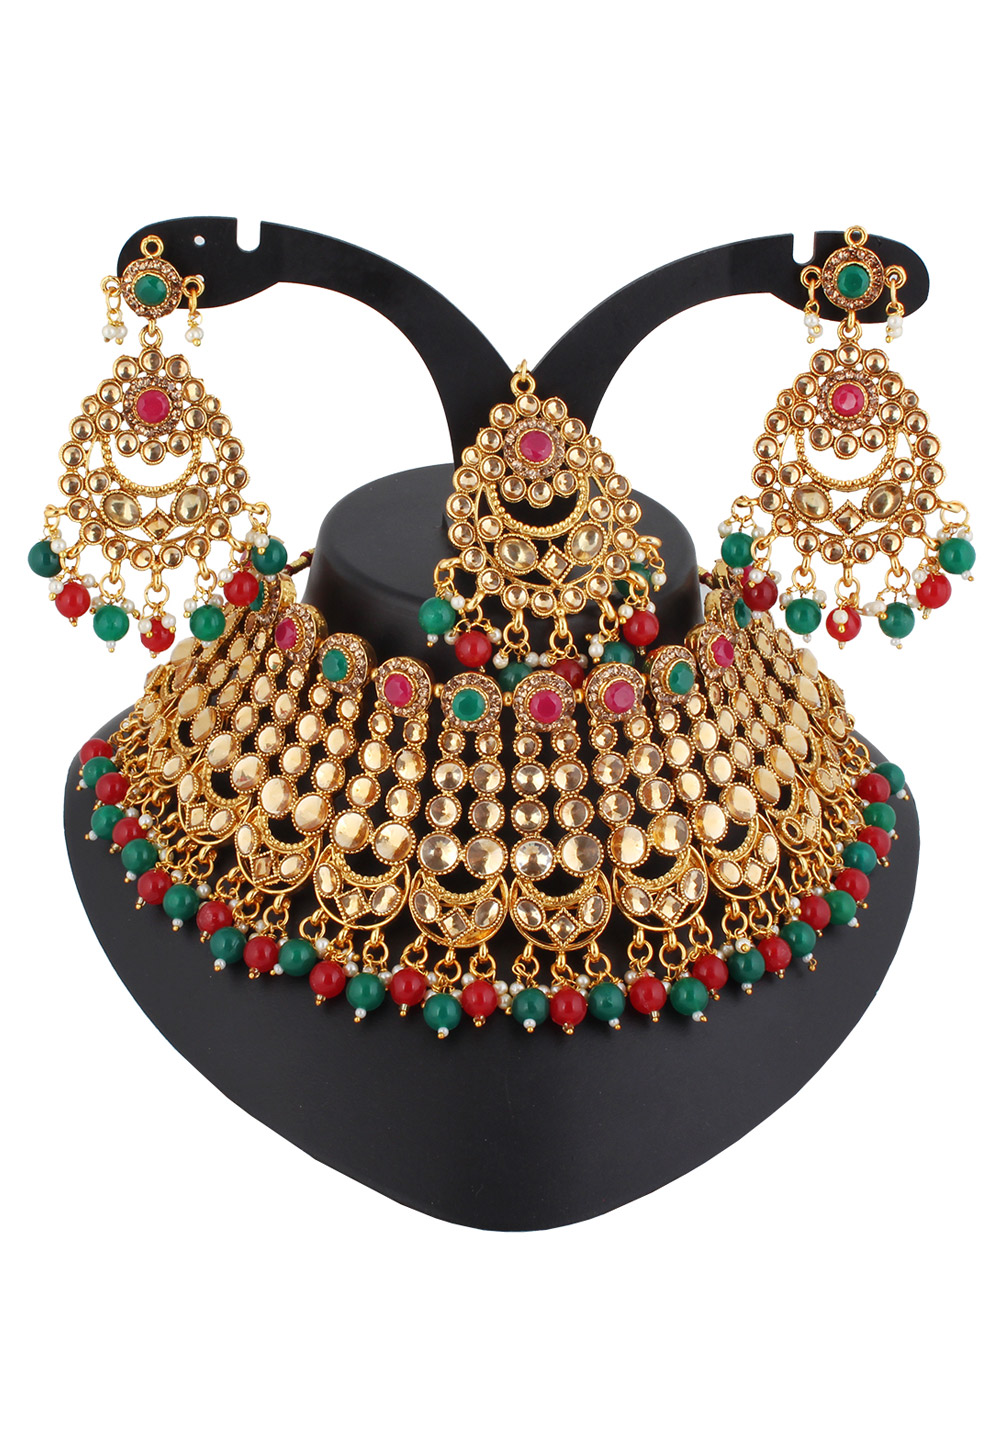 Red Alloy Austrian Diamond Necklace Set With Earrings and Maang Tikka 220280